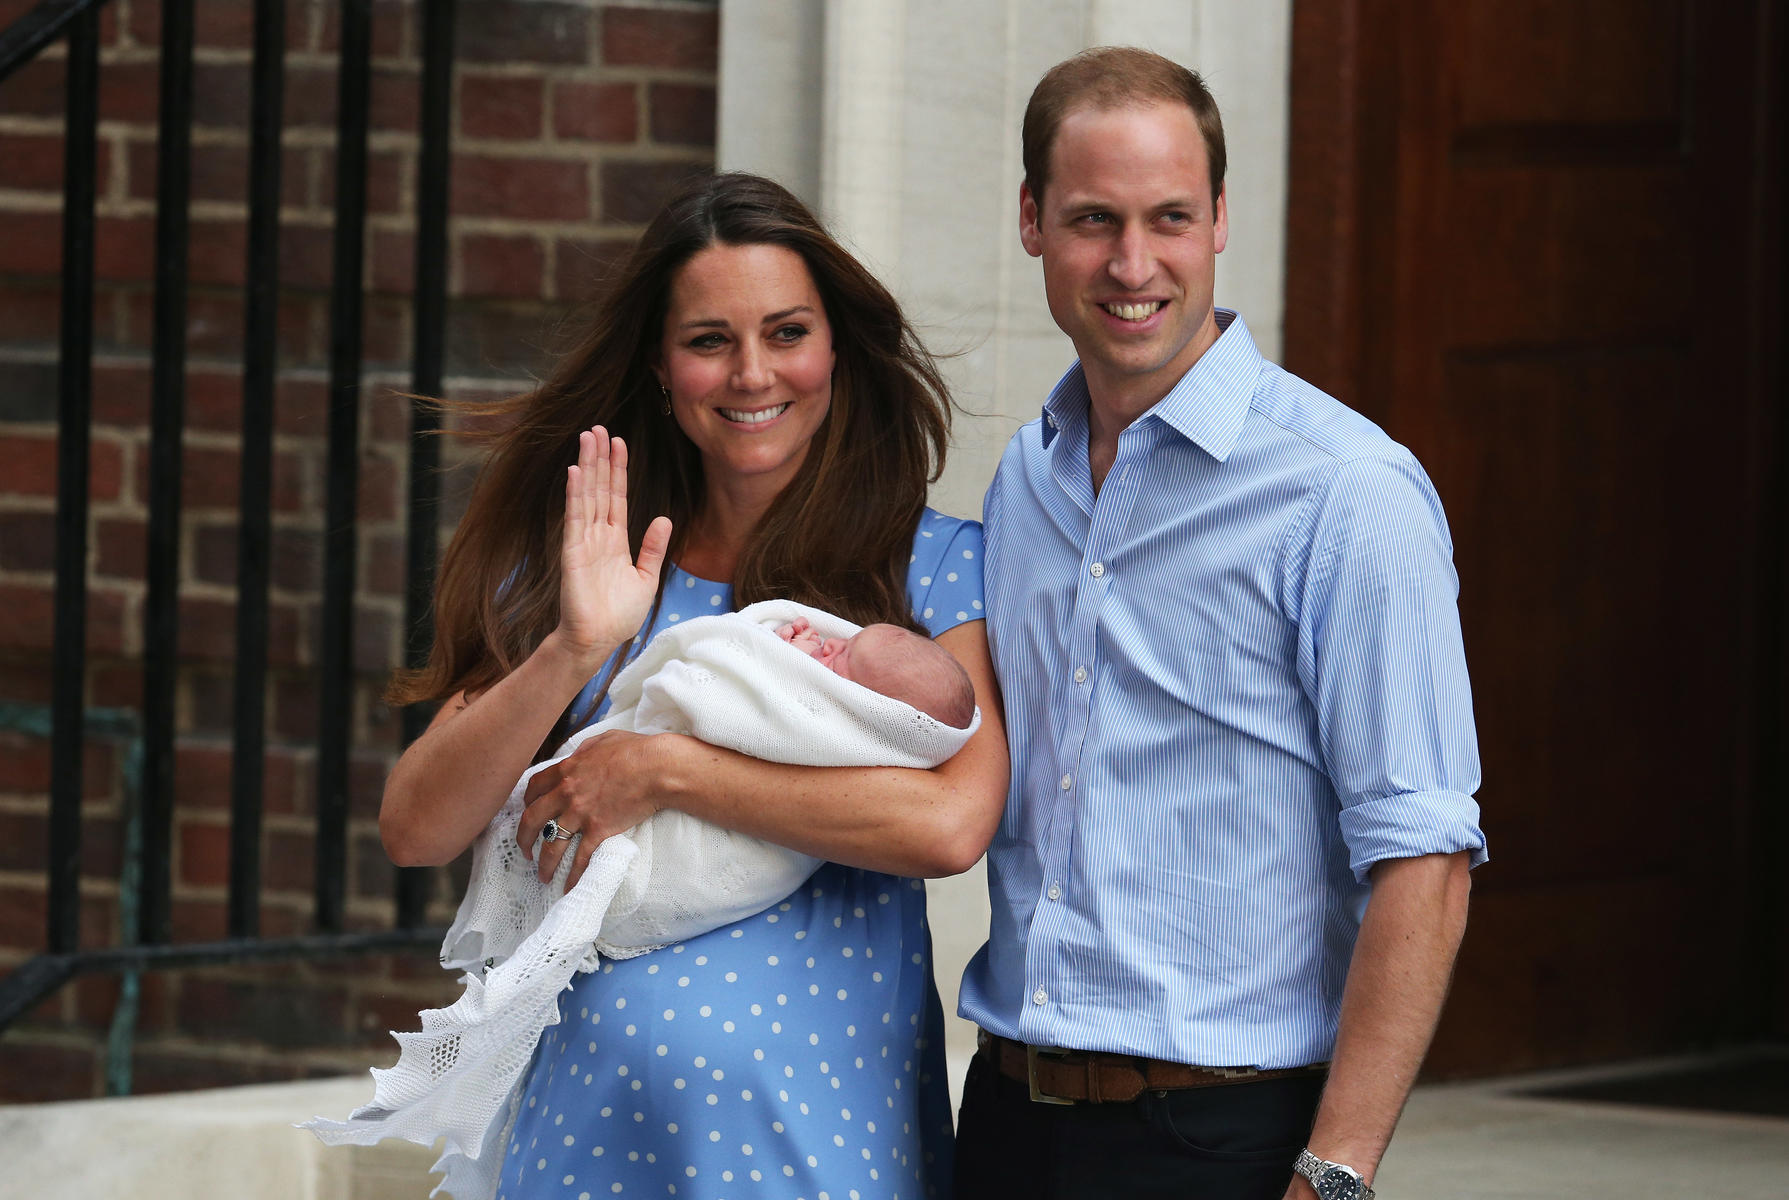 Prince William and Kate Middleton Reveal Their Royal Baby Boy's Name!